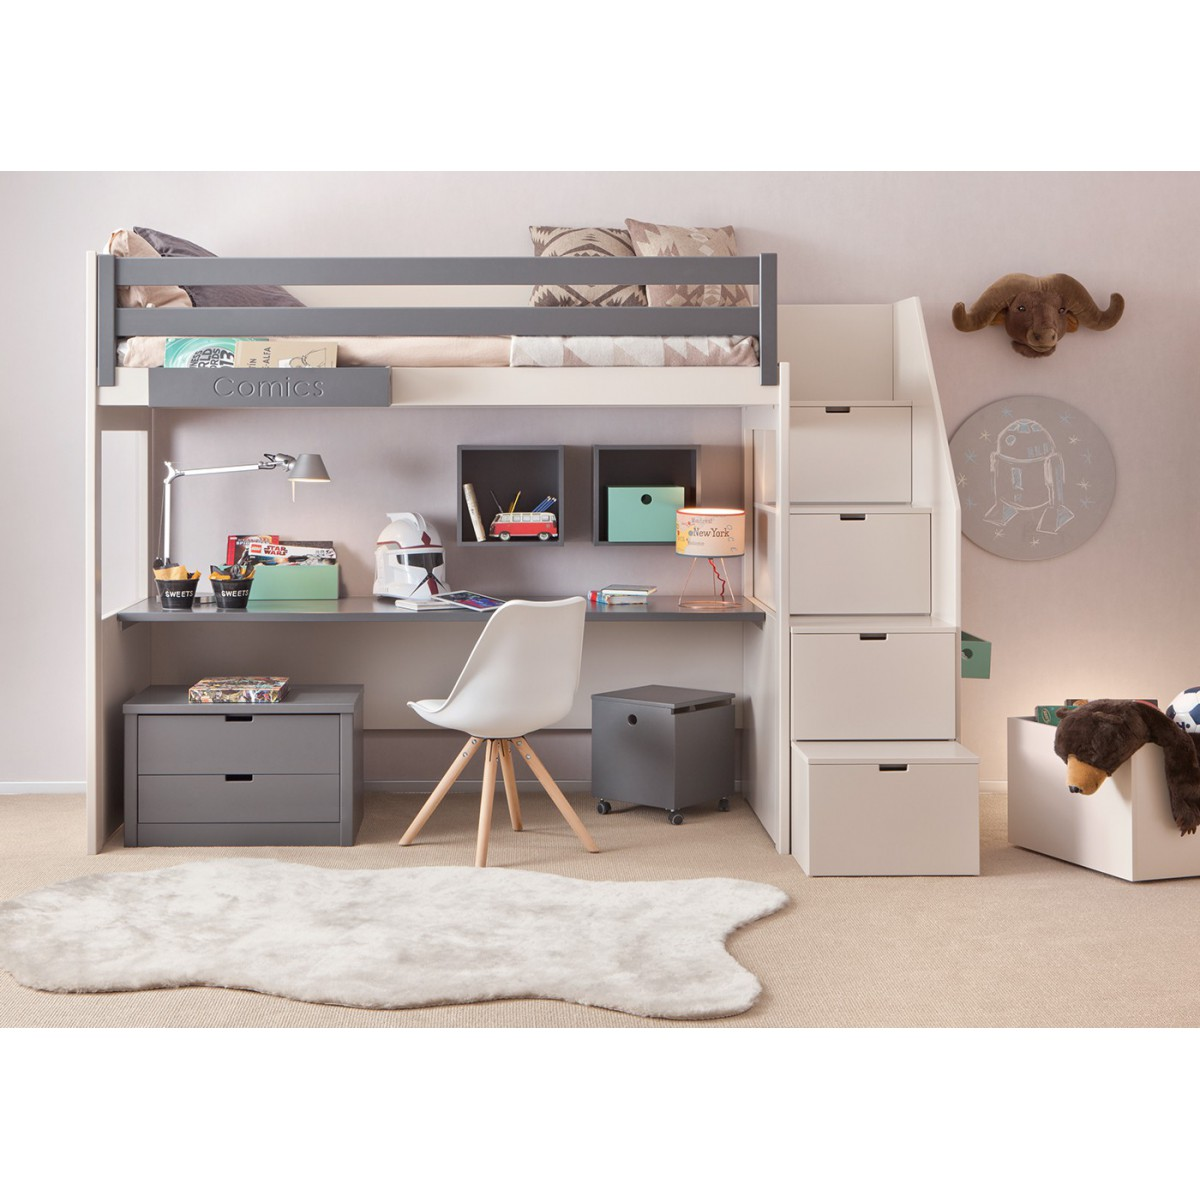 Chambre design sp cial ados juniors sign for Lit de chambre